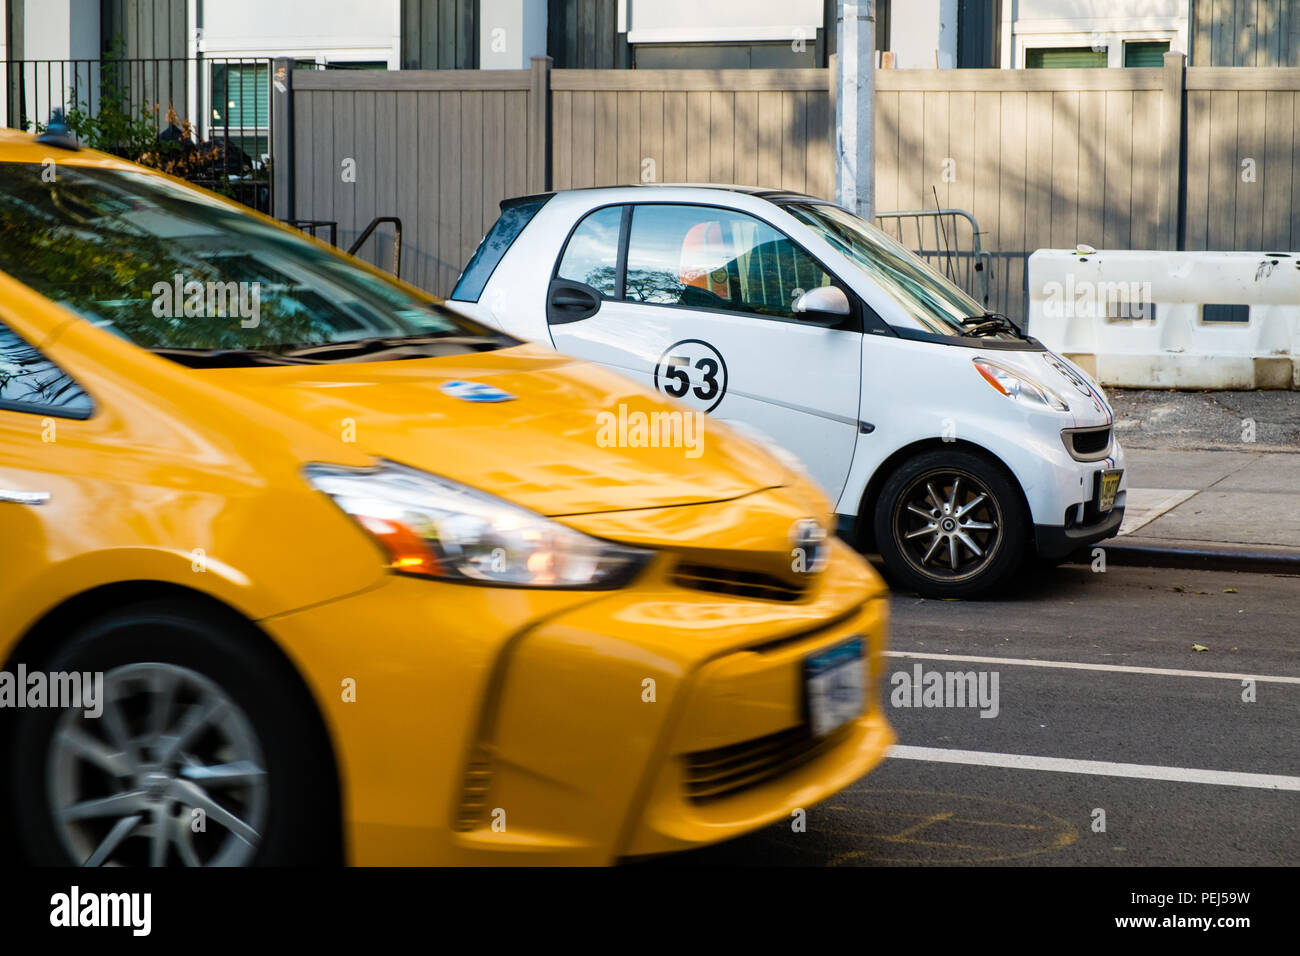 New York yellow taxi passing a Smart Car with Herbie number 53 decal - Stock Image